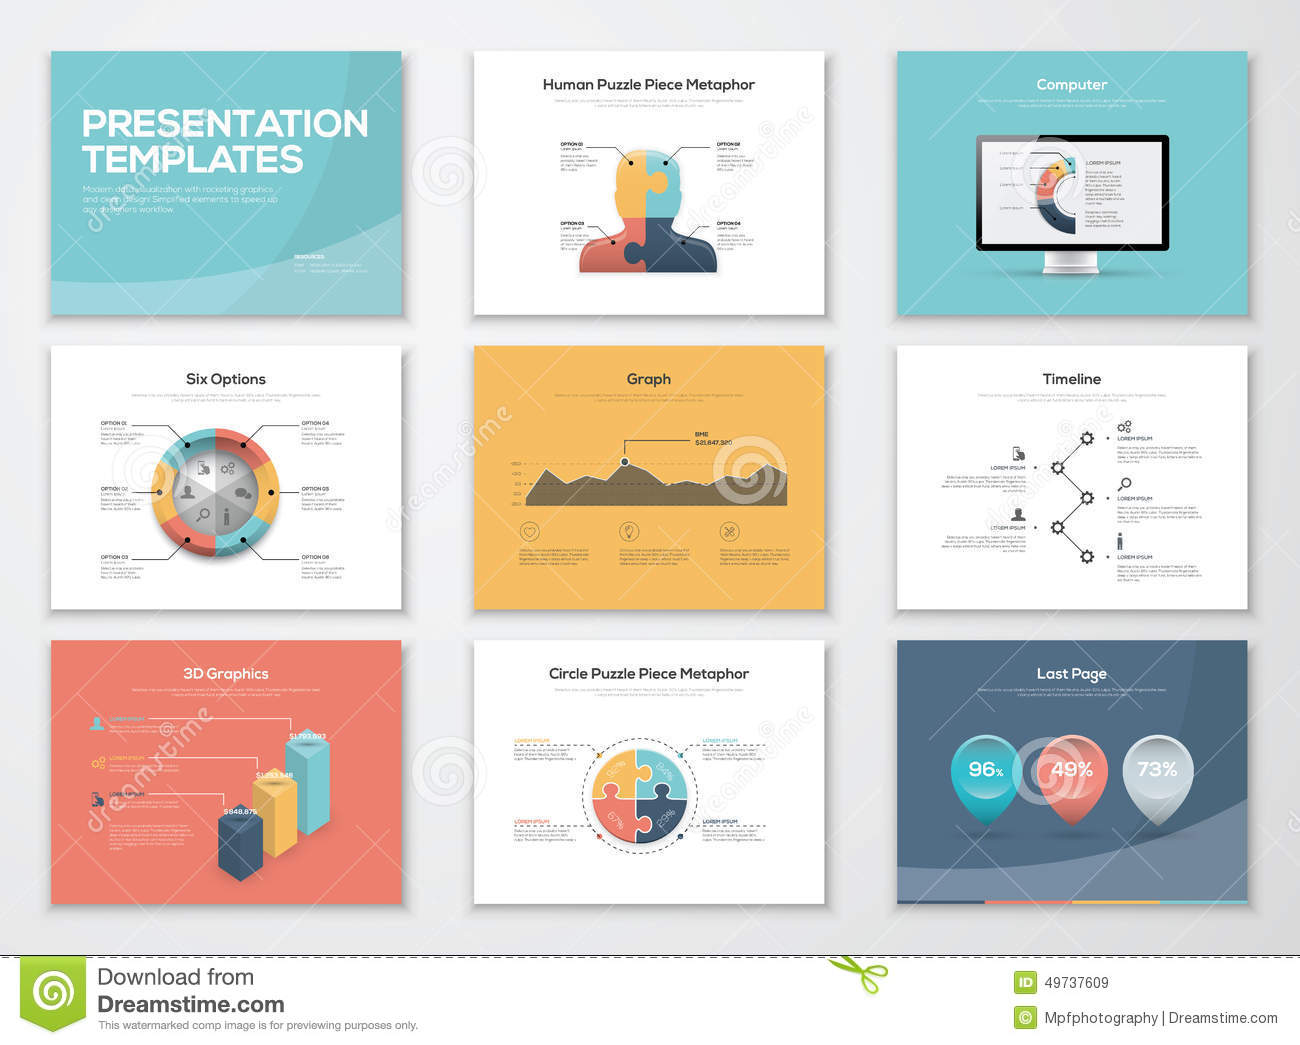 Business presentation templates and infographics vector elements business presentation templates and infographics vector elements cheaphphosting